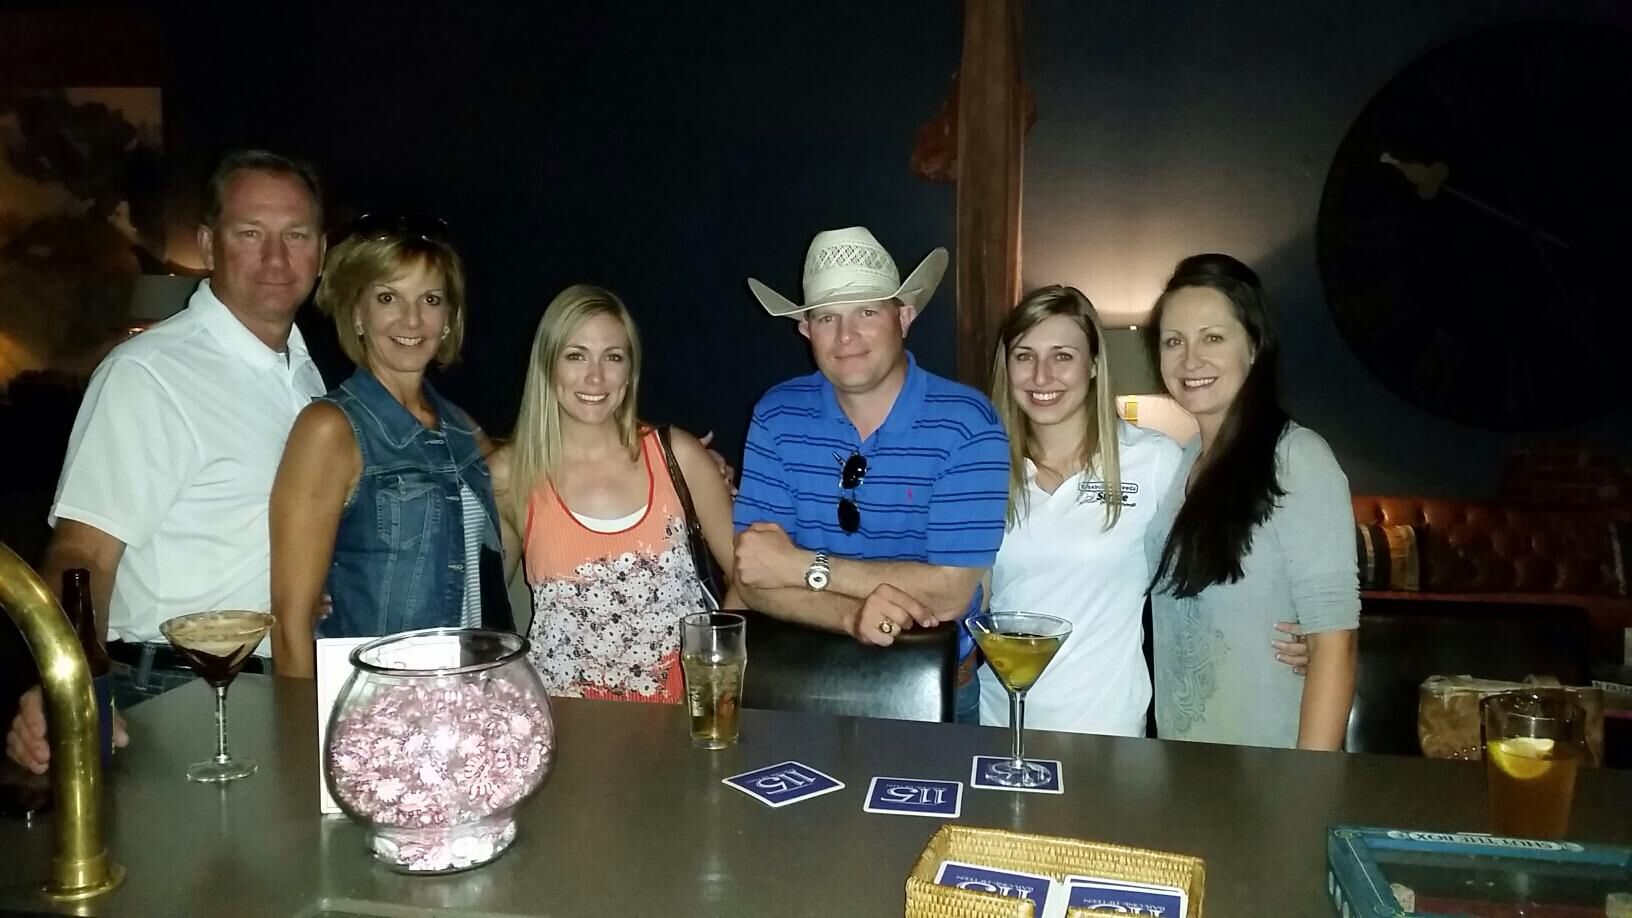 Great time w friends at bluebonnet.